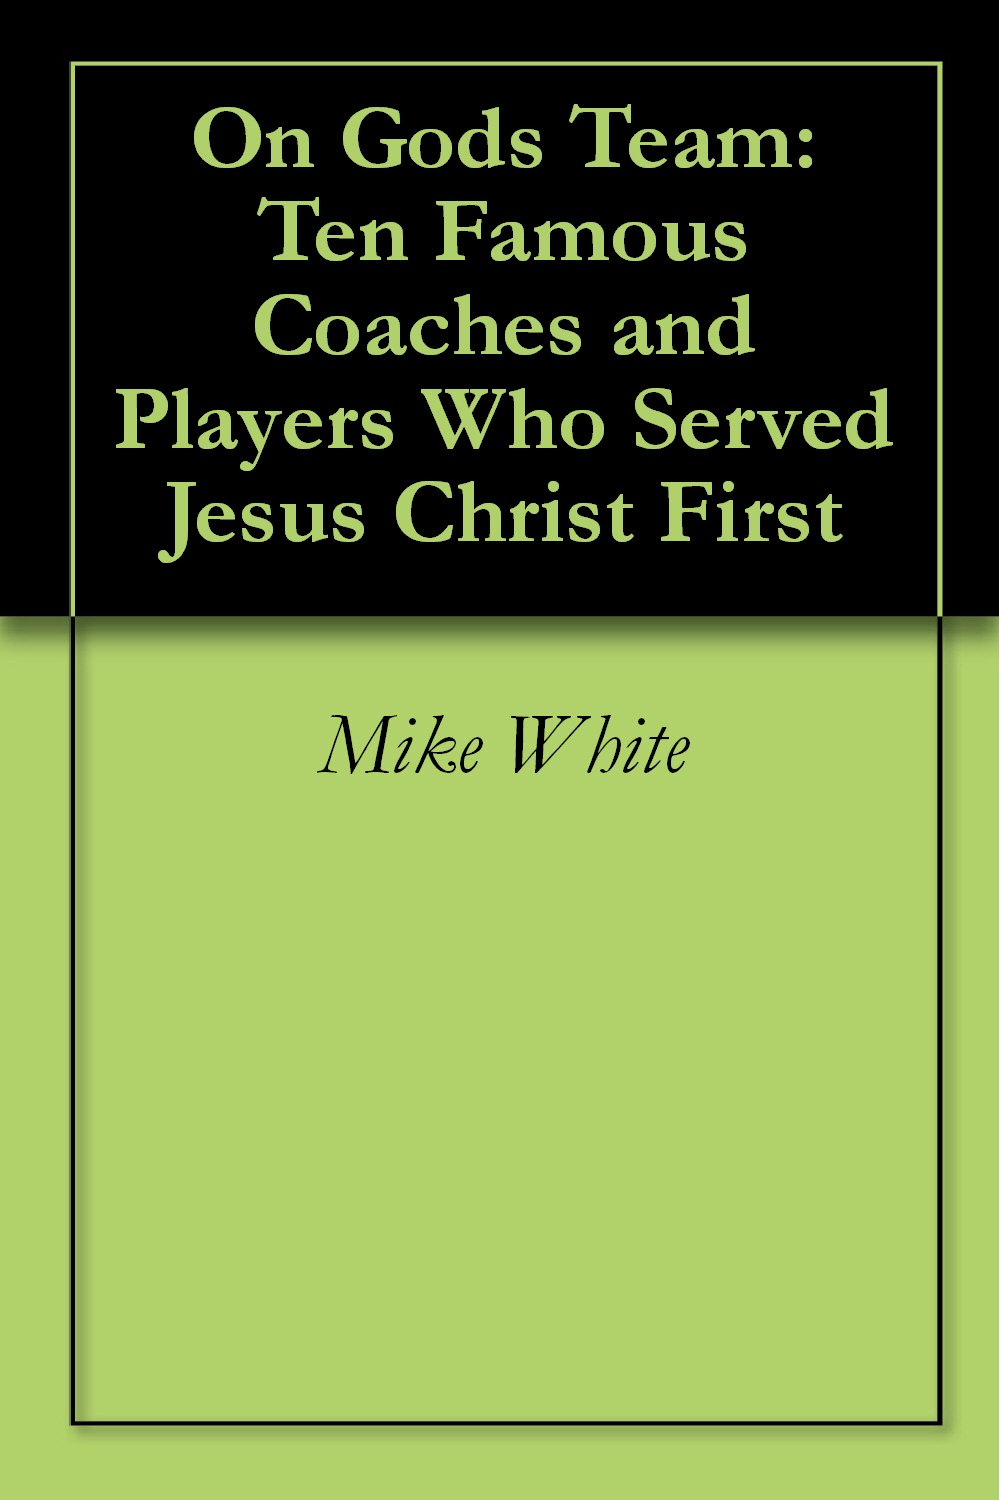 On God's Team: Ten Famous Coaches and Players Who Served Jesus Christ First